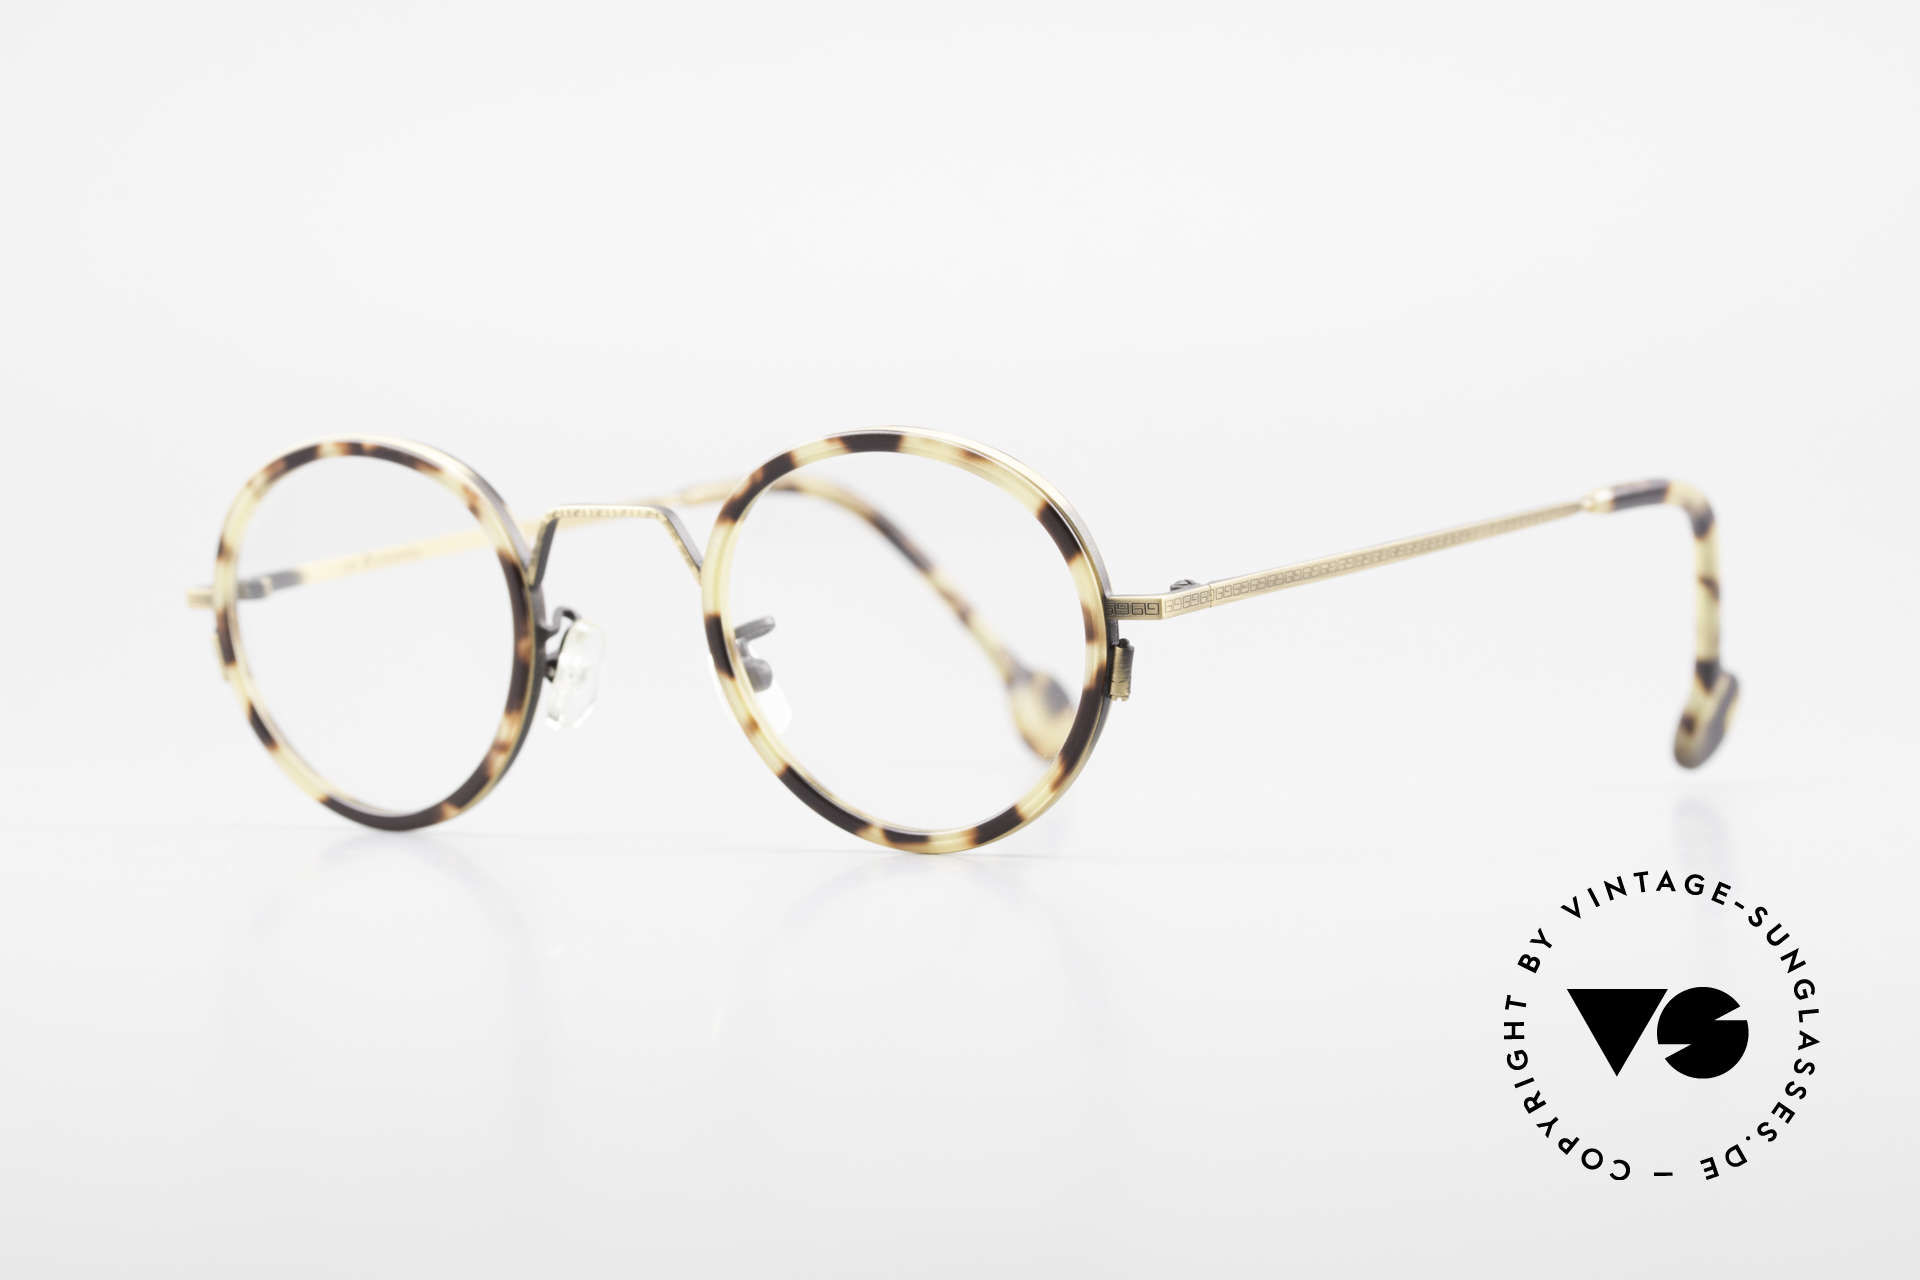 L.A. Eyeworks JO HENRY 442 Round Vintage 90's Eyeglasses, unisex frame (for ladies & gents) in brass / tortoise, Made for Men and Women